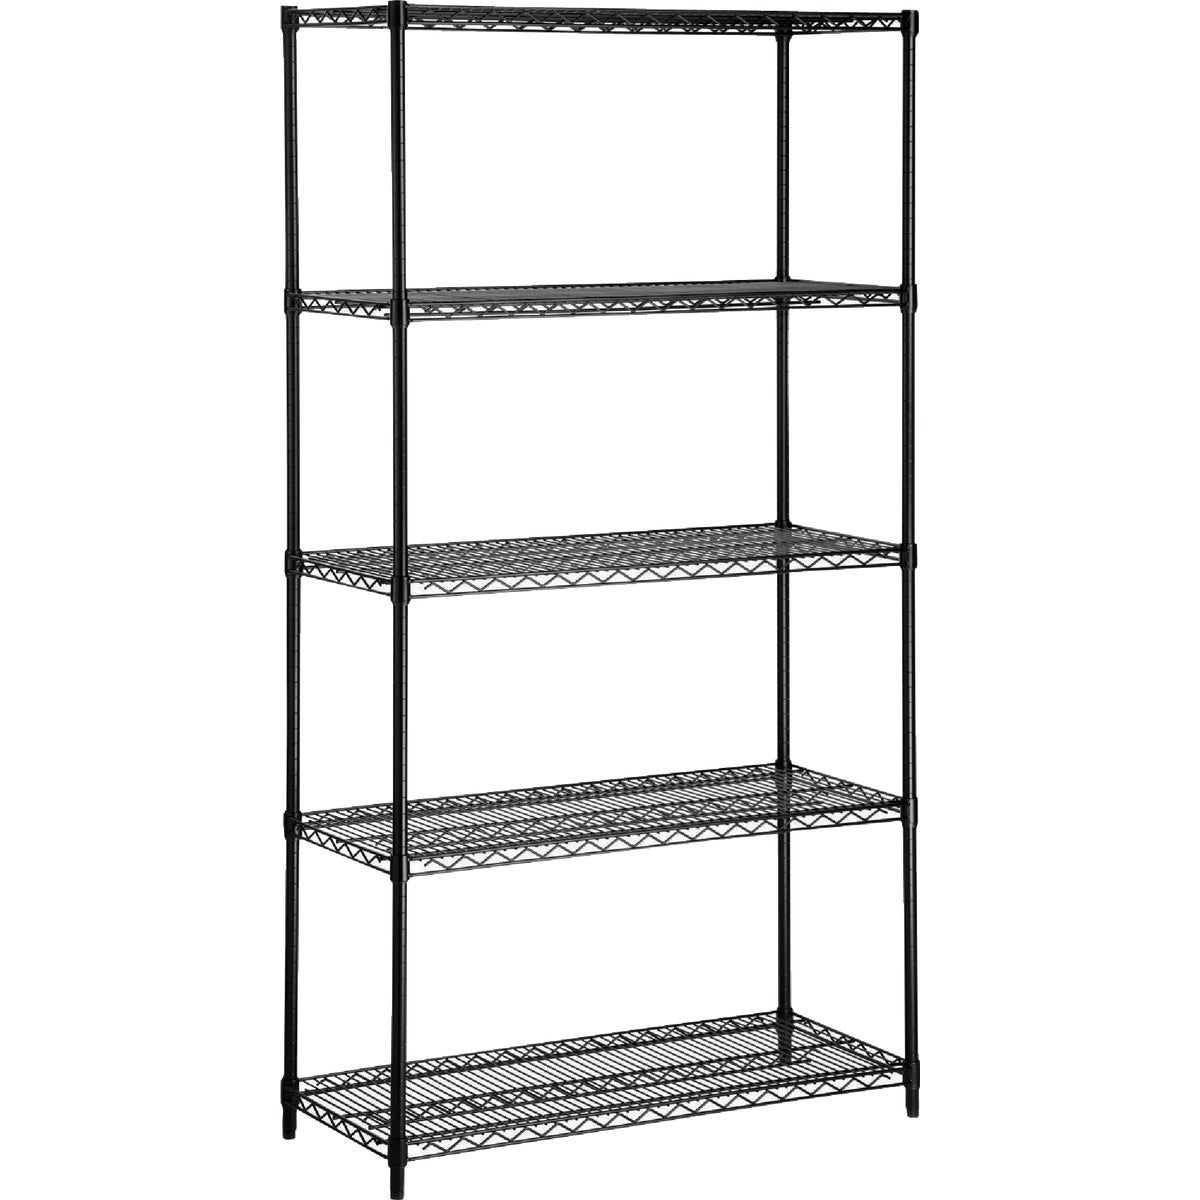 Honey-Can-Do SHF-01442 Adjustable Industrial Storage Shelving Unit, 200-Pound...